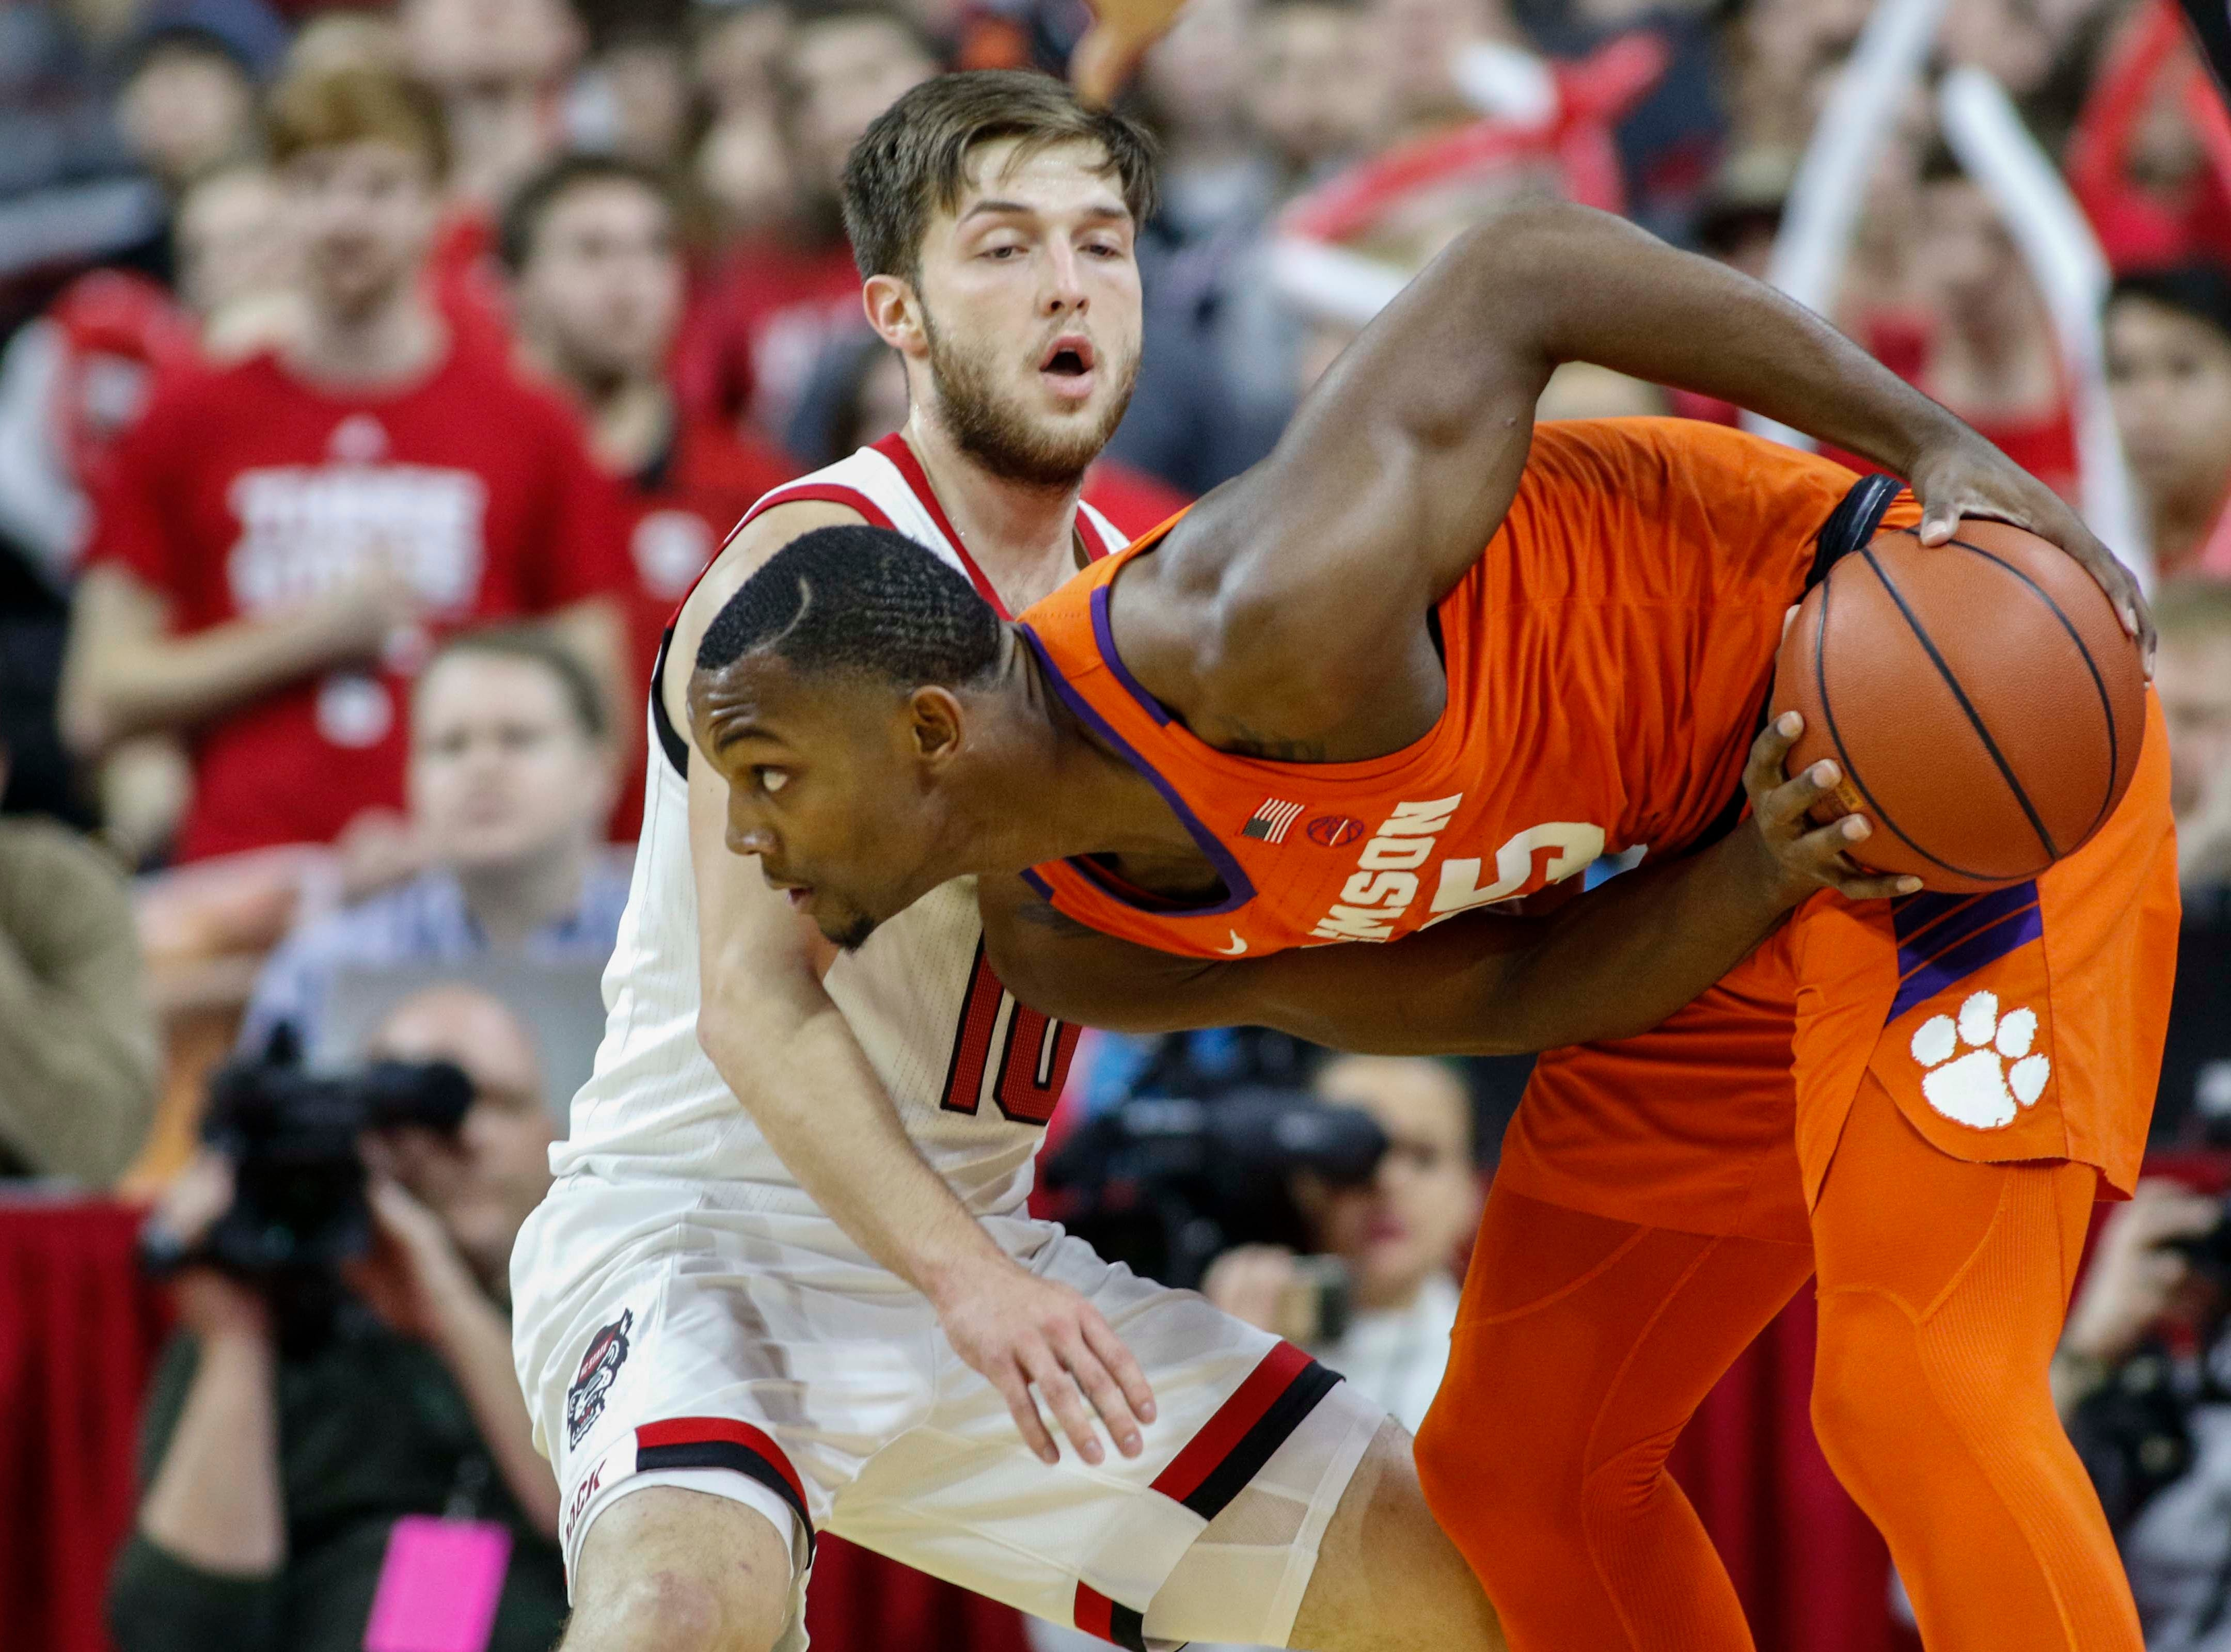 Jan 26, 2019; Raleigh, NC, USA; Clemson Tigers forward Aamir Simms (25) looks  for room to pass against North Carolina State Wolfpack guard Braxton Beverly (10) in the first half at PNC Arena. Mandatory Credit: Nell Redmond-USA TODAY Sports